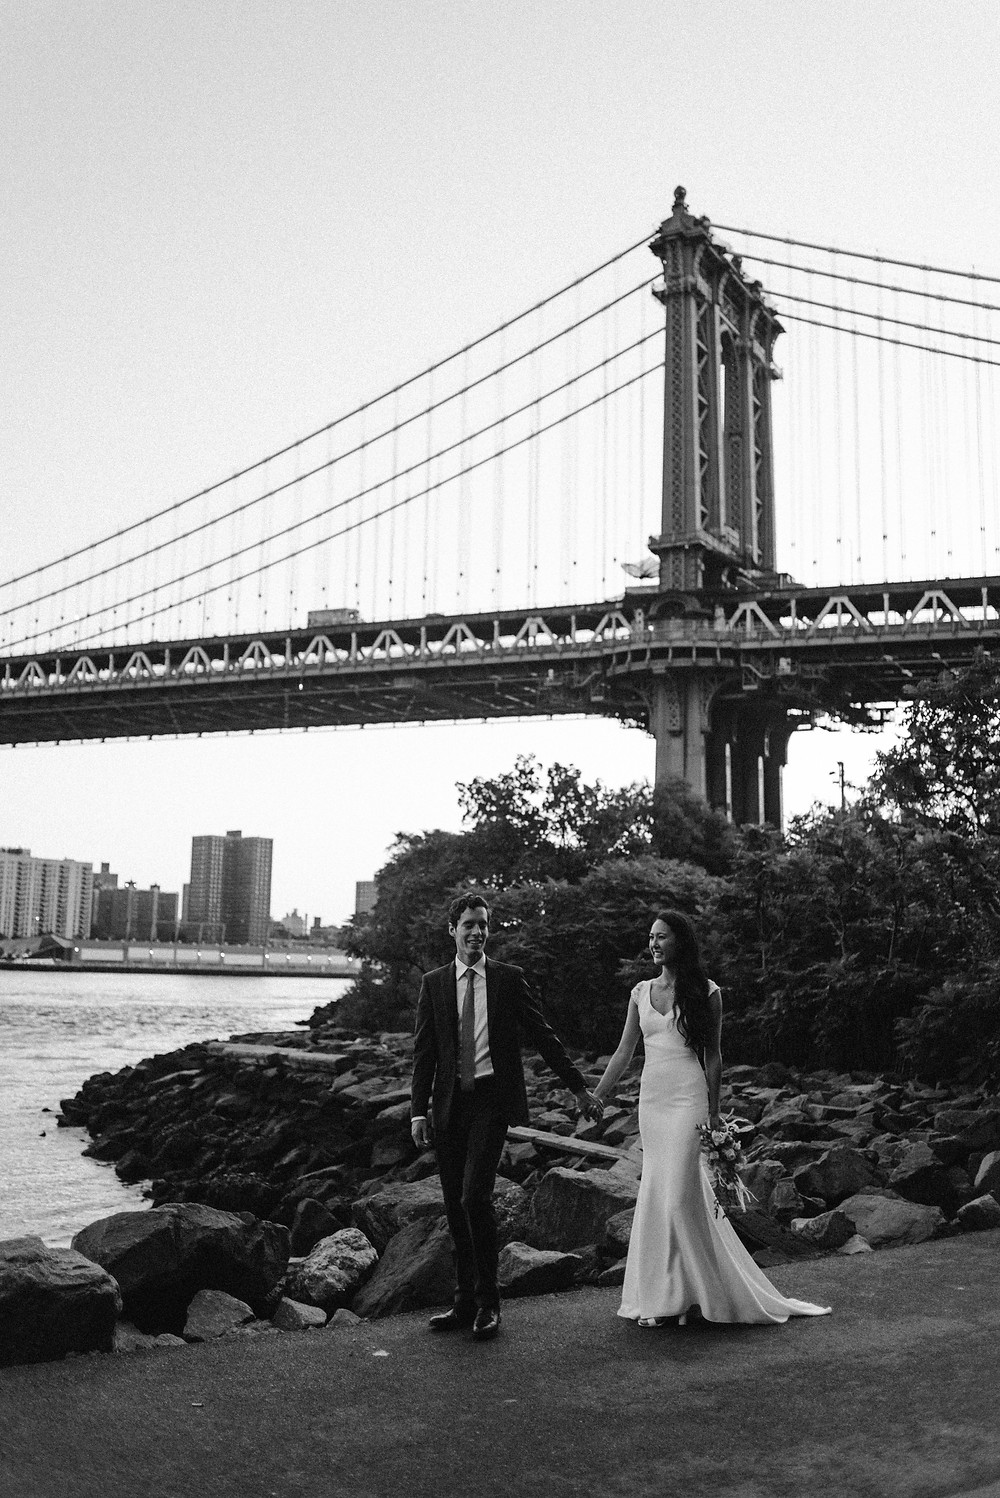 Couple's photography session in Nyc